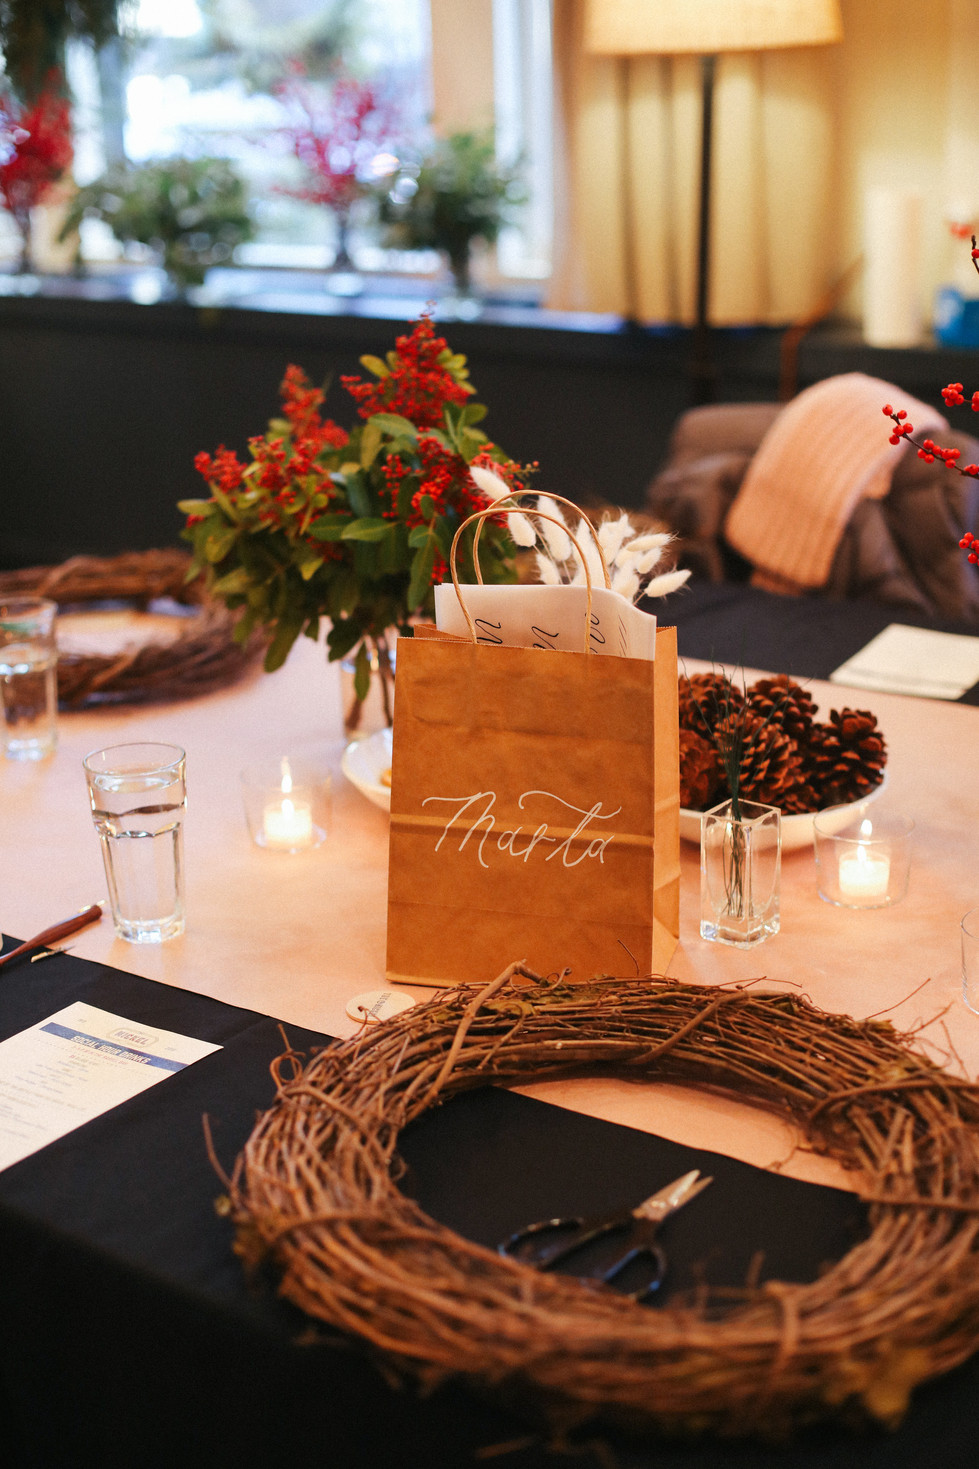 Calligraphy & Wreath Workshop - Hotel Teatro, Denver